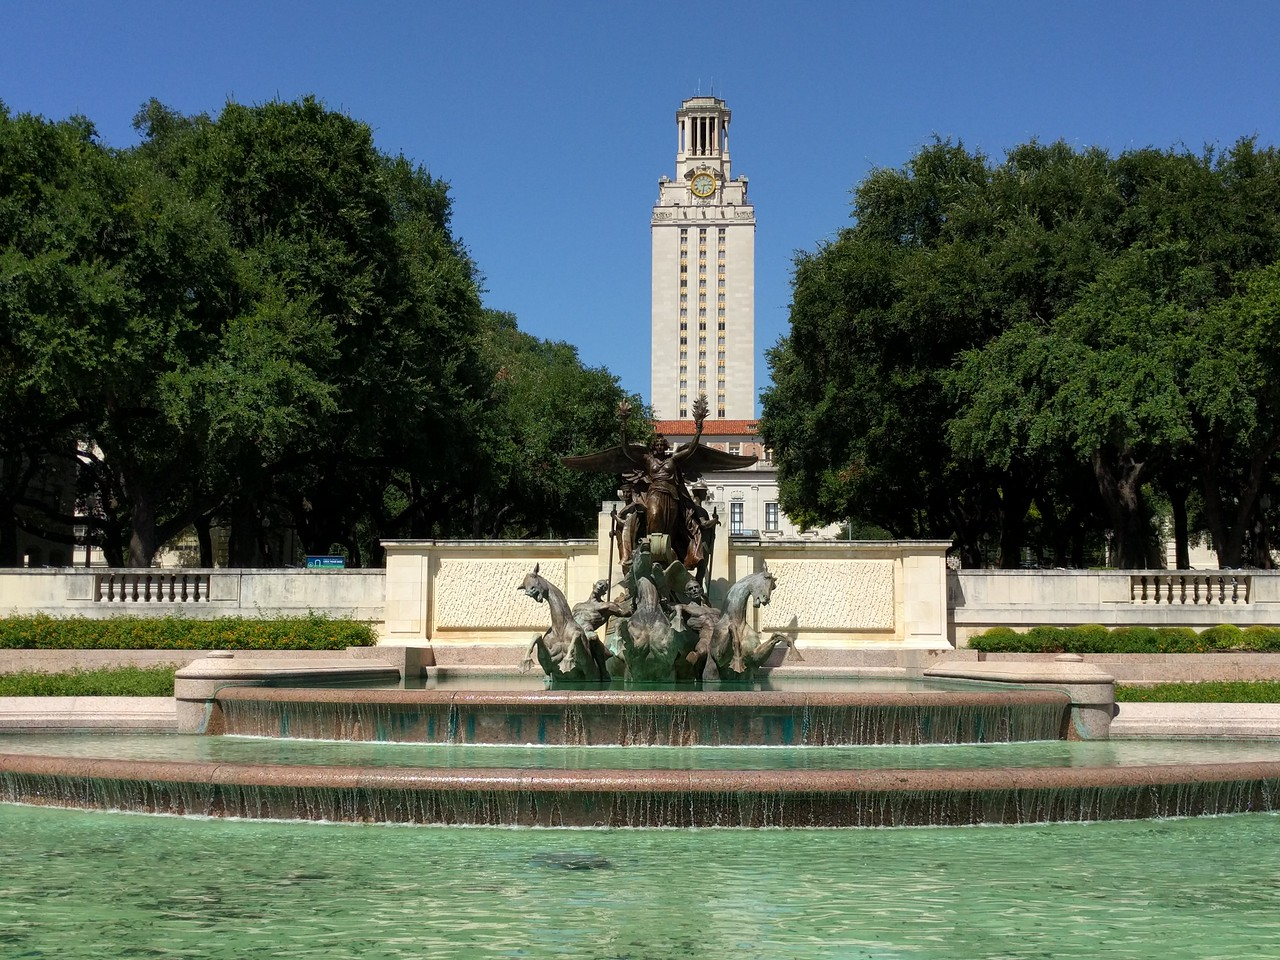 081 - Austin - Littlefield Fountain